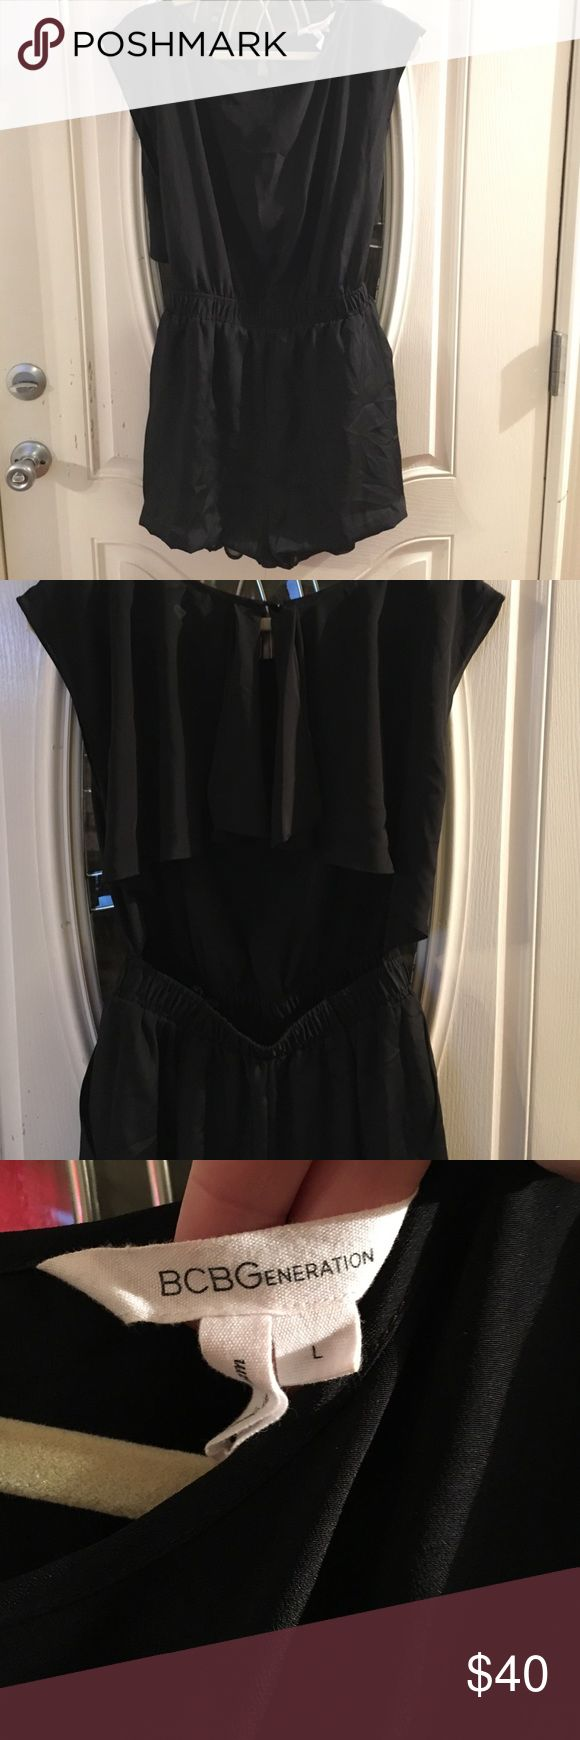 BCBGeneration Black Short Sleeve Romper Black short sleeved romper with an open back. Size large with pockets. Make me an offer! BCBGeneration Pants Jumpsuits & Rompers